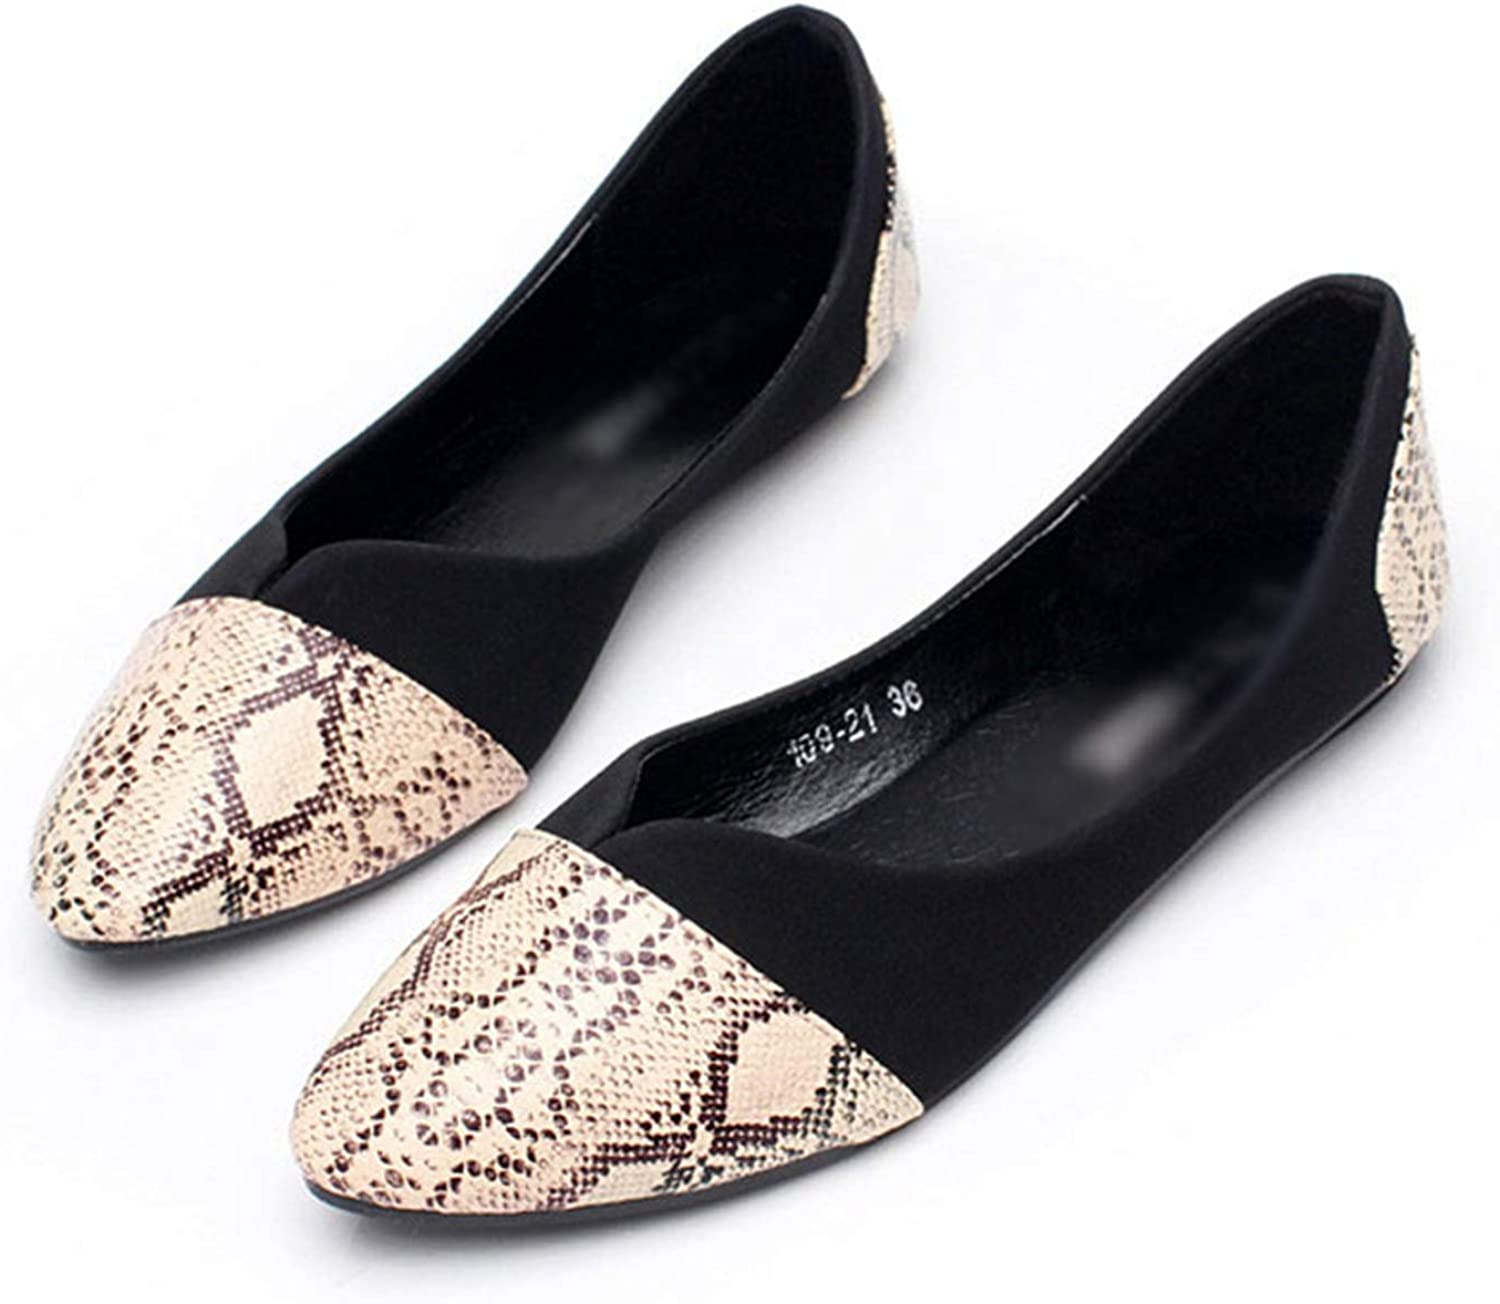 Kyle Walsh Pa Women Stylish Flats shoes Snake Print Slip-on Ladies Fashion Soft Moccasins